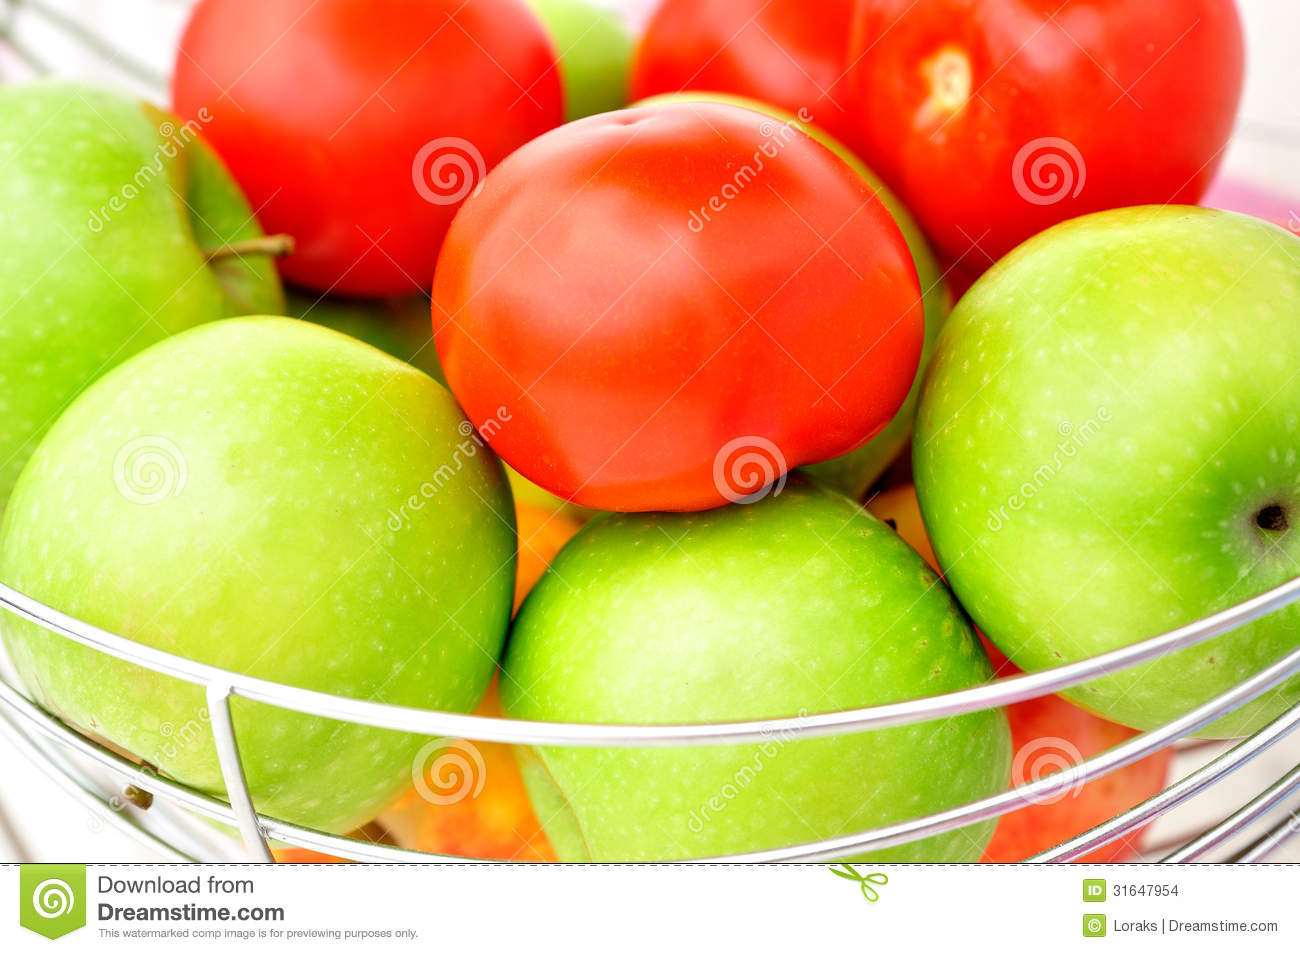 Green Apples And Red Tomatoes. Stock Images - Image: 31647954